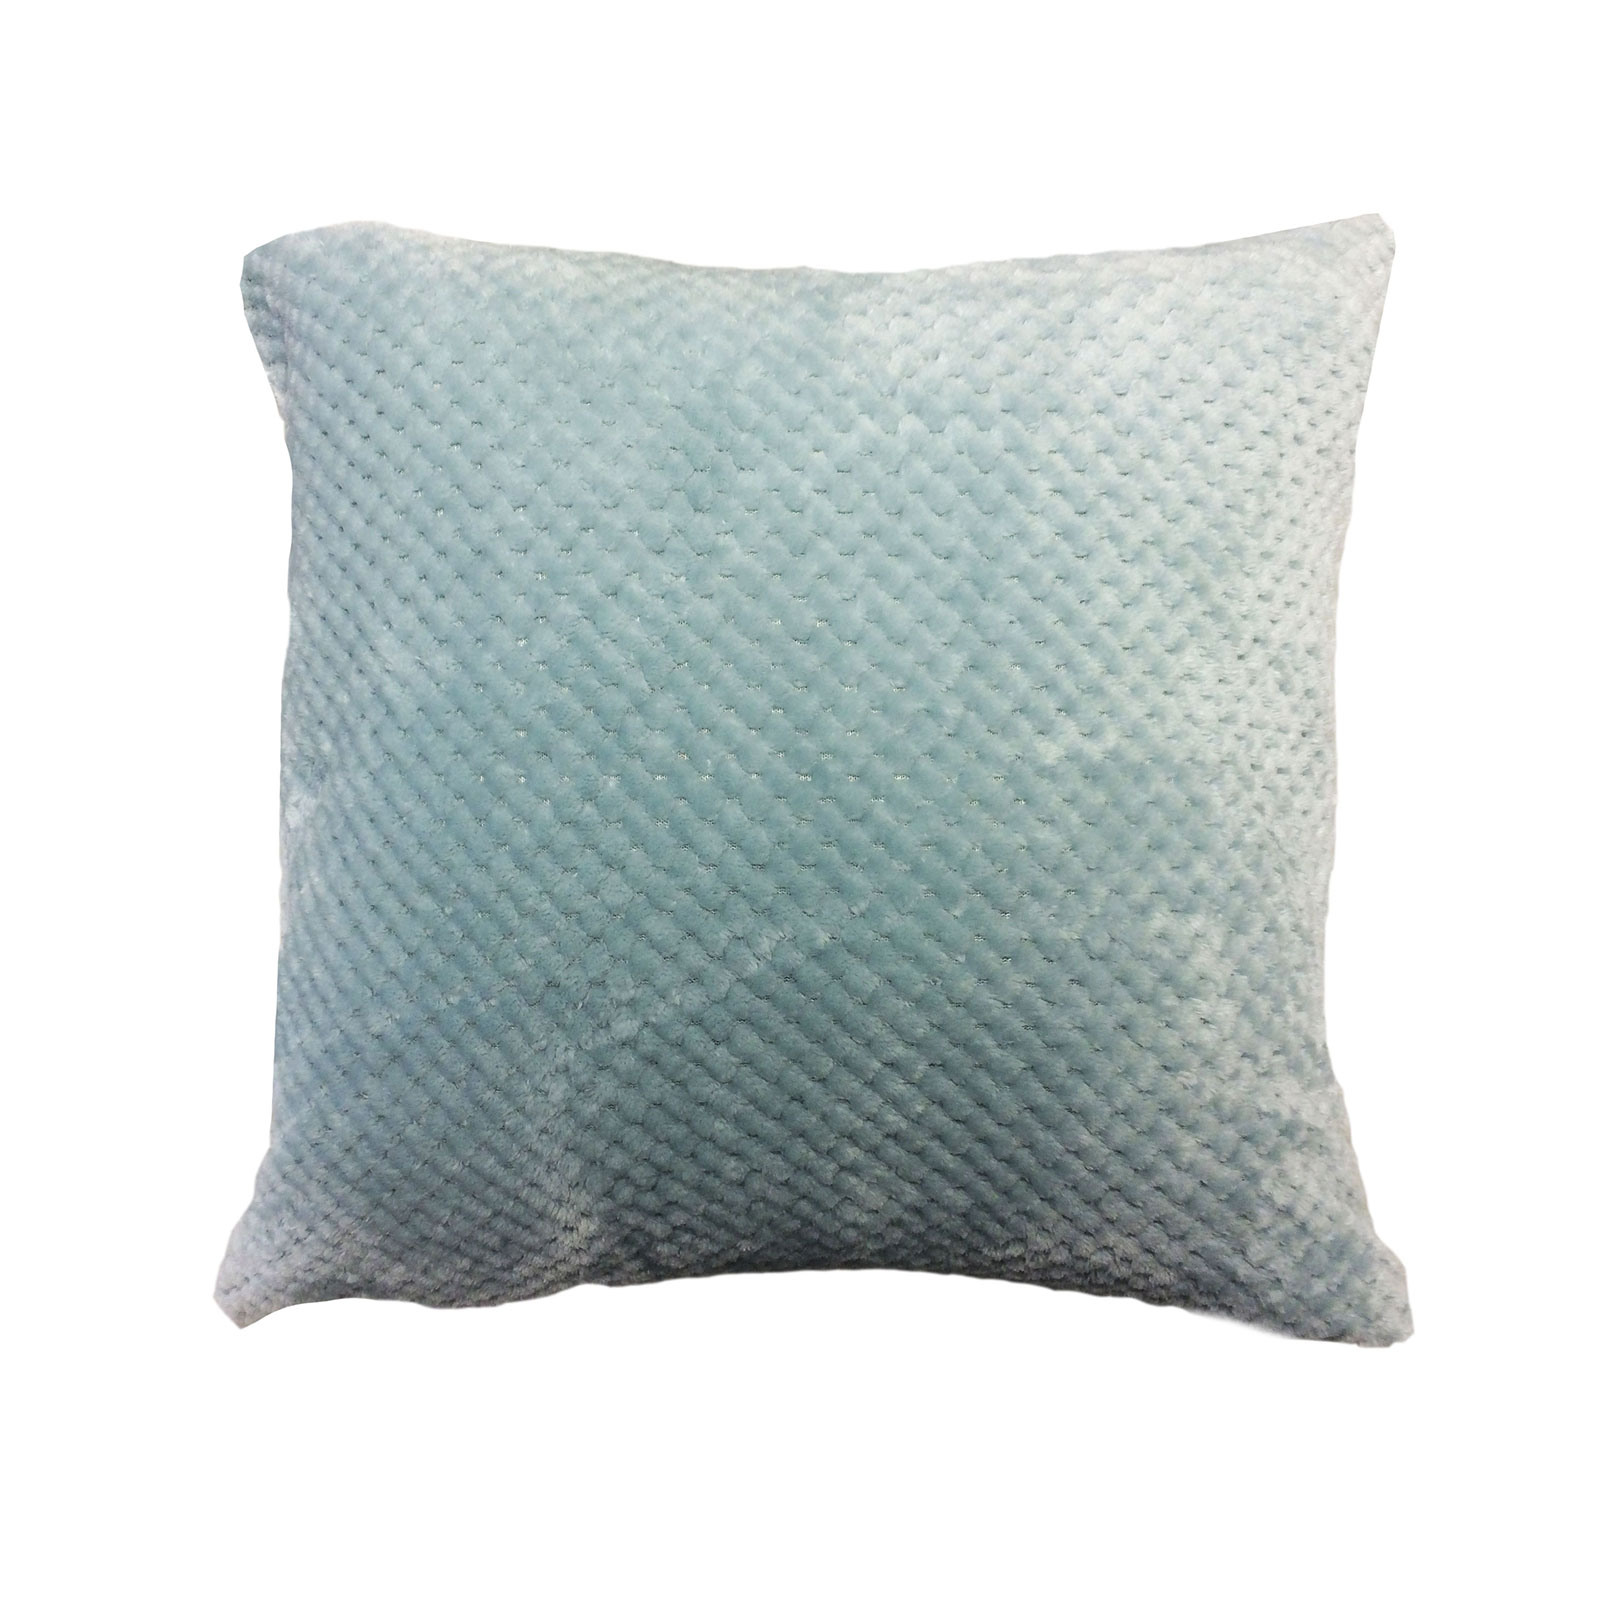 big size sofa cushion hudson collection reviews plain large waffle cover pillow case home